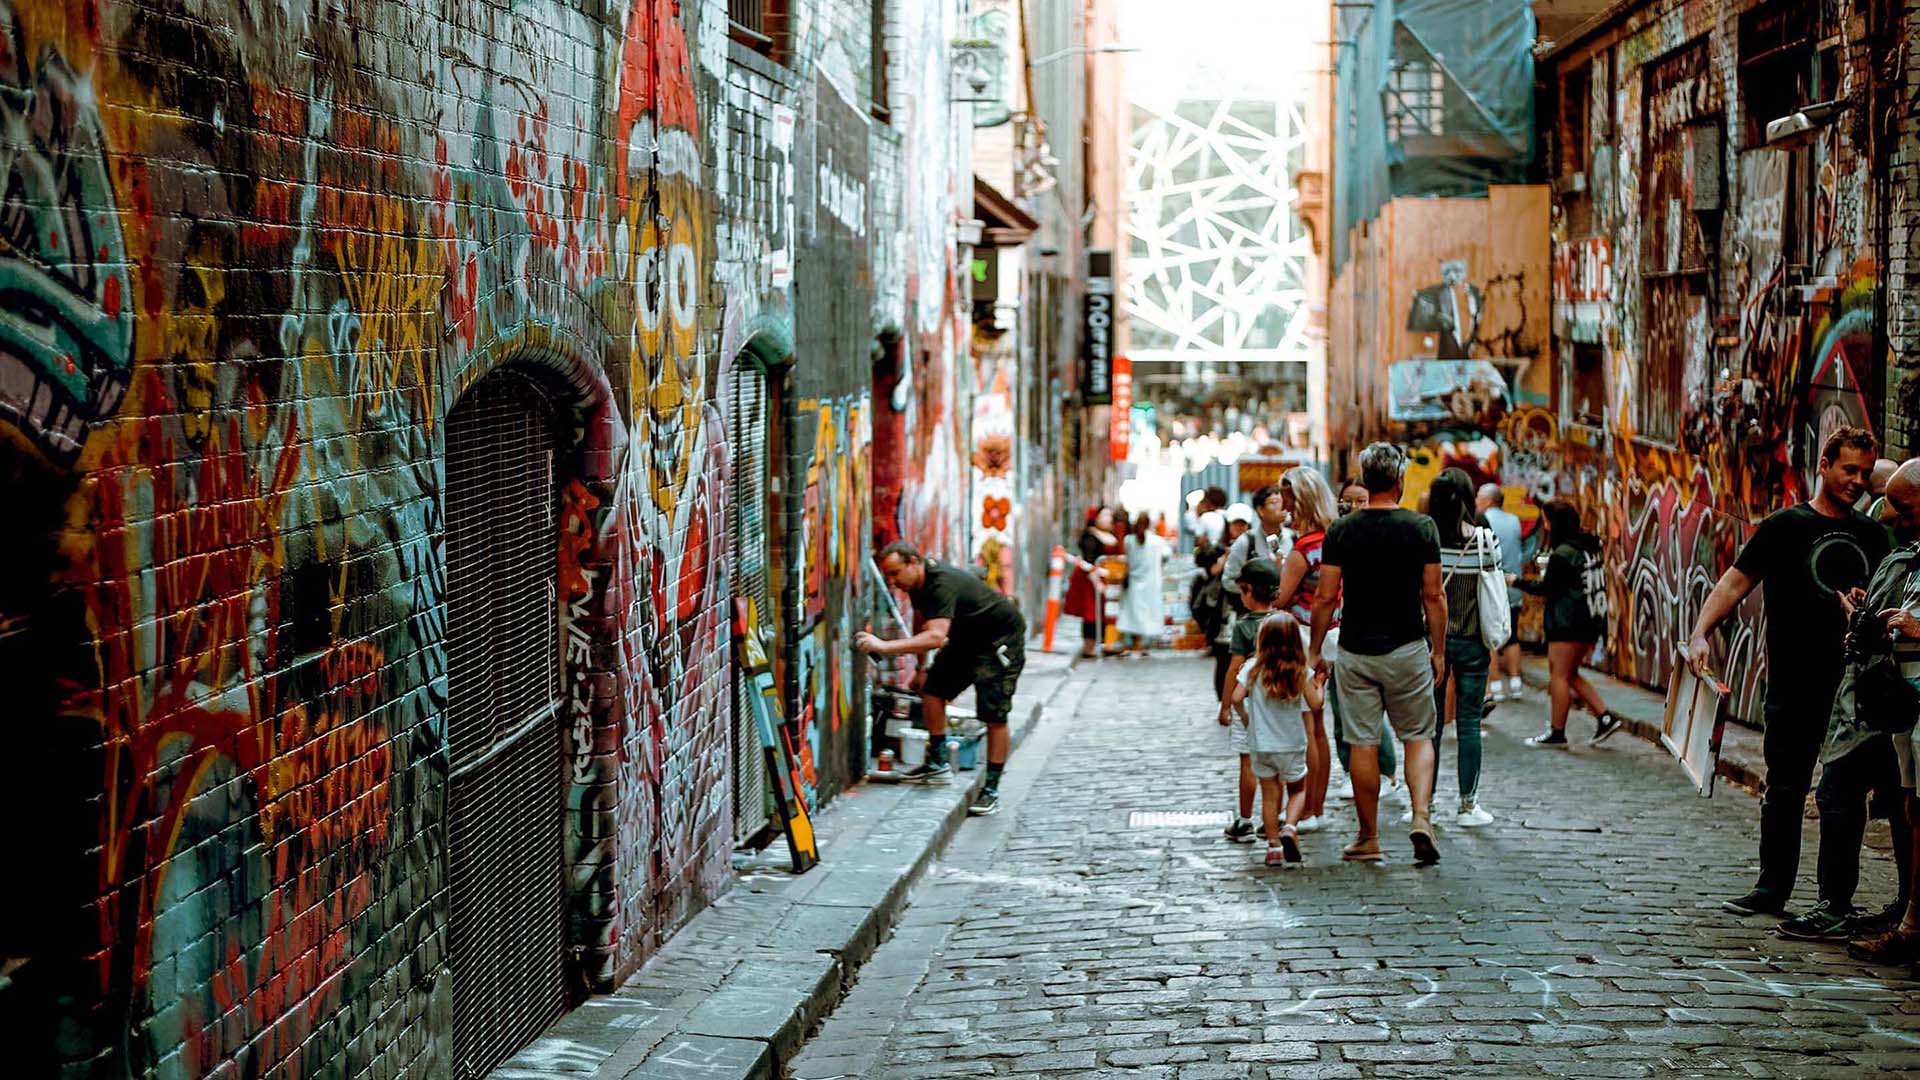 People view street artists in action in one of Melbourne's popular art laneways. Picture: Annie Spratt.